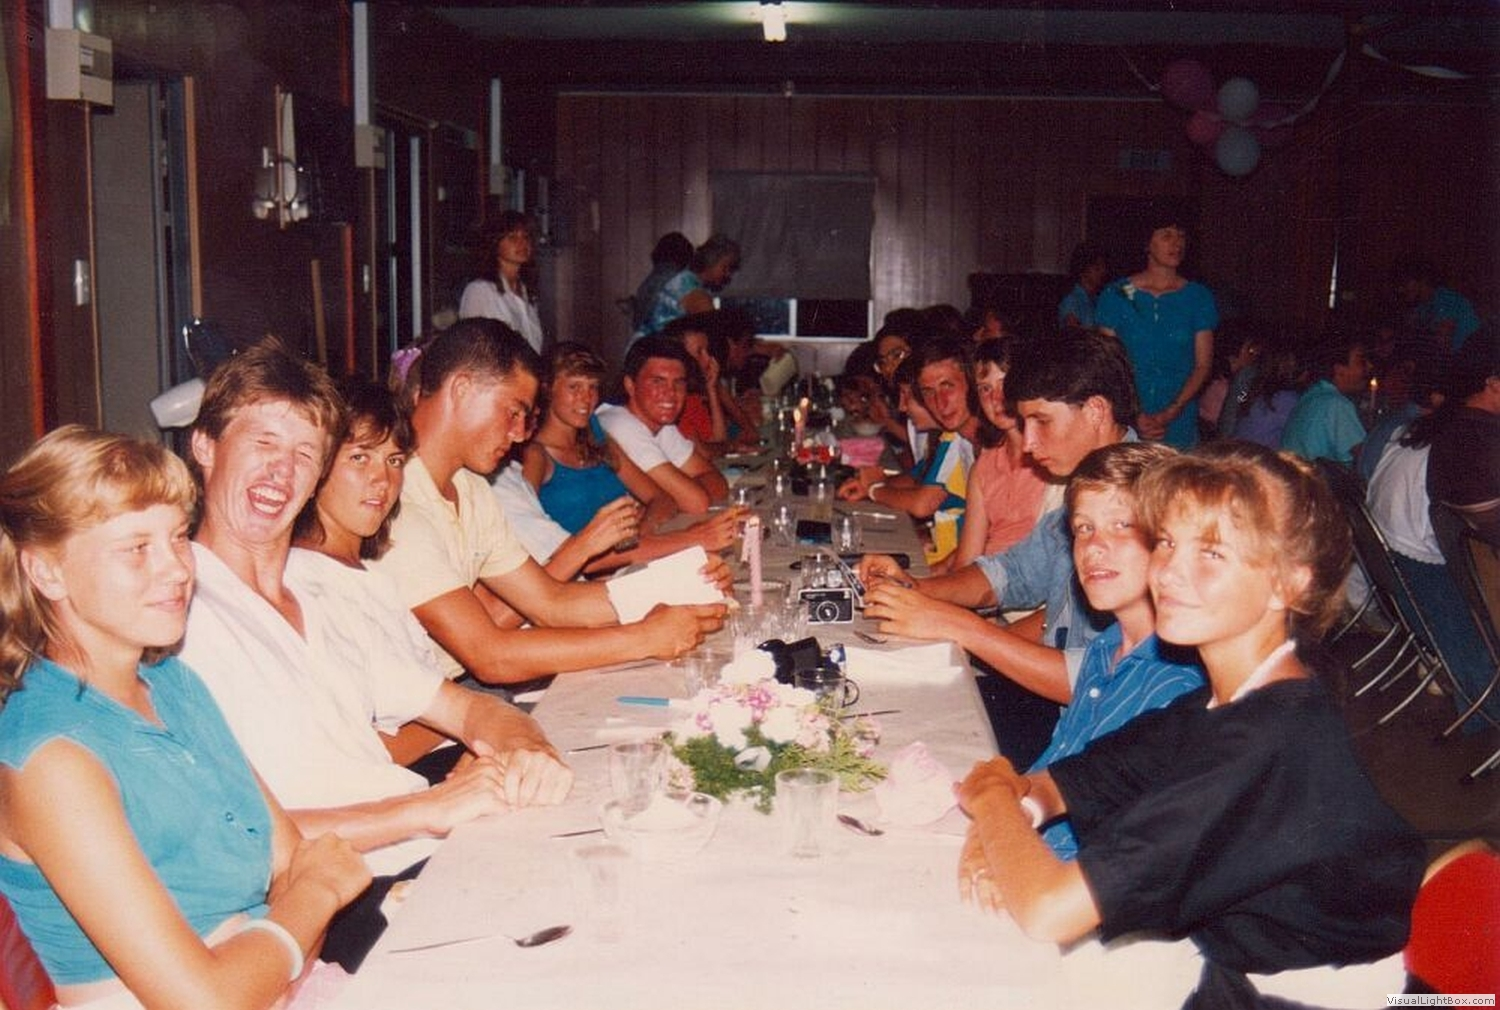 WCG Friends Gallery (80's & 90's) – Welcome to Roger's Website